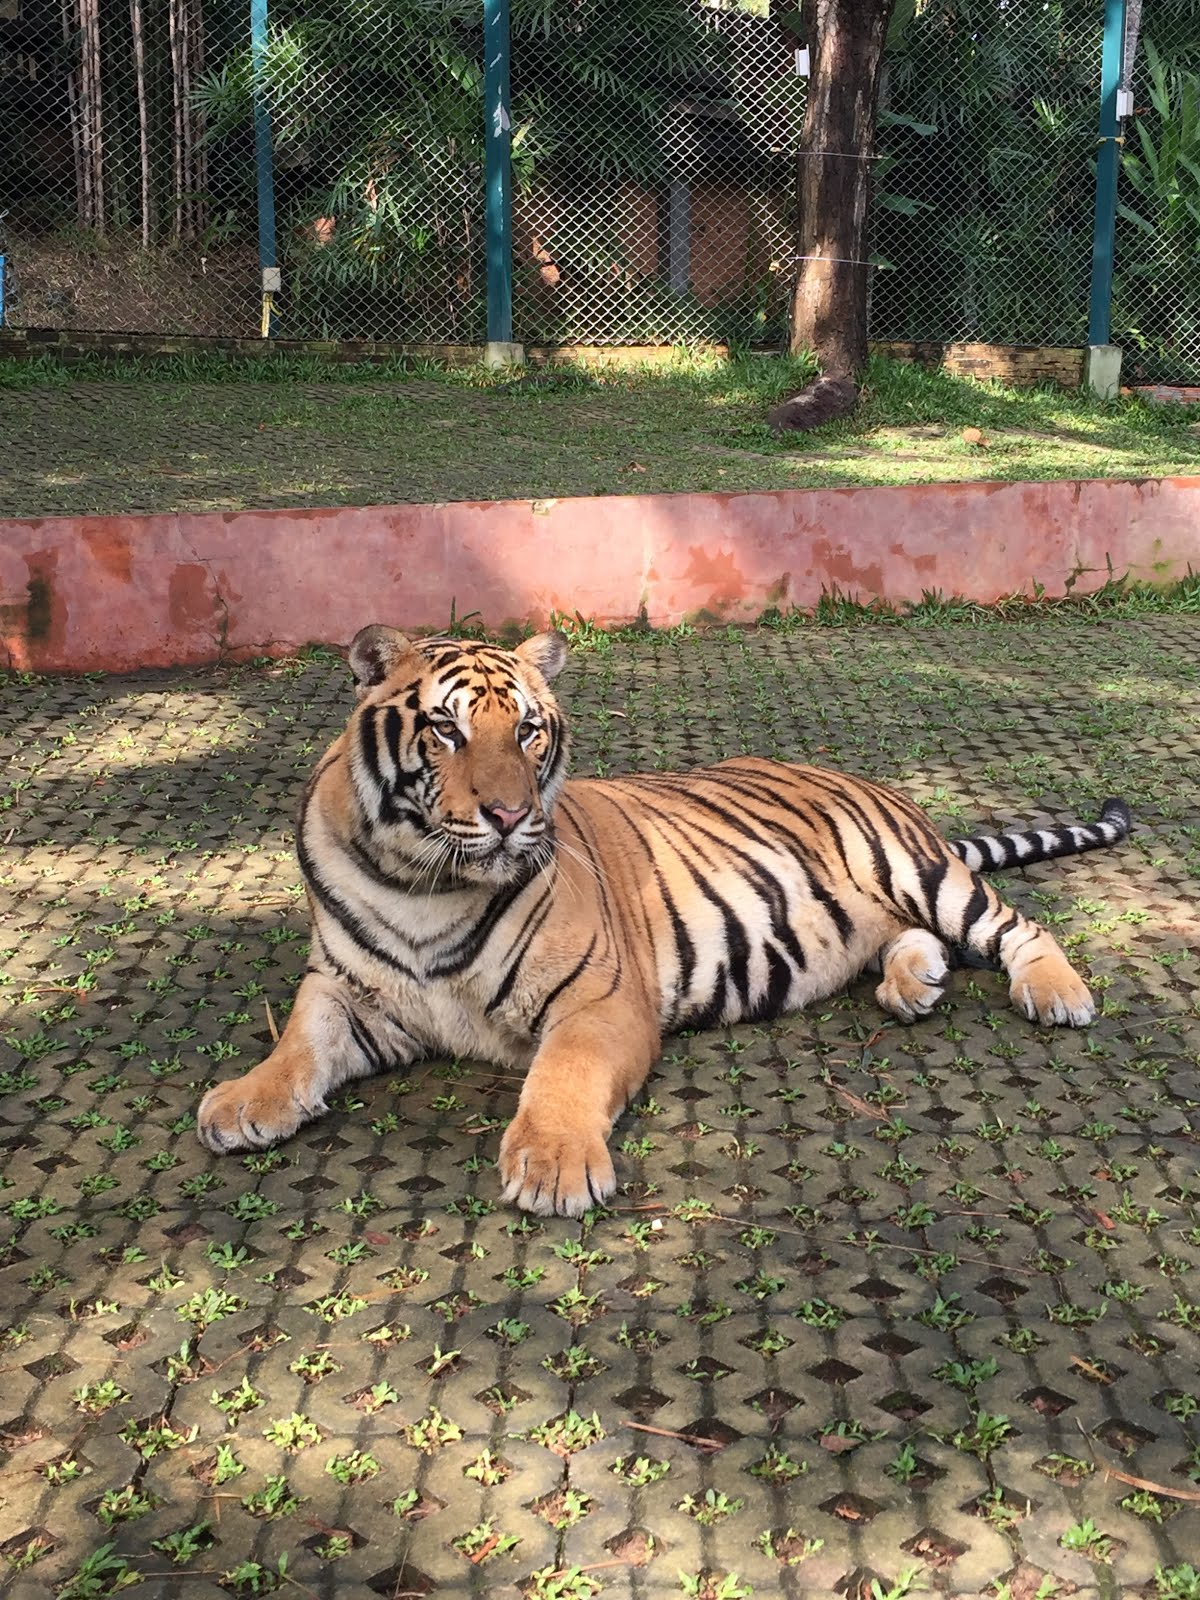 Tiger Kingdom in Chiang Mai, Thailand